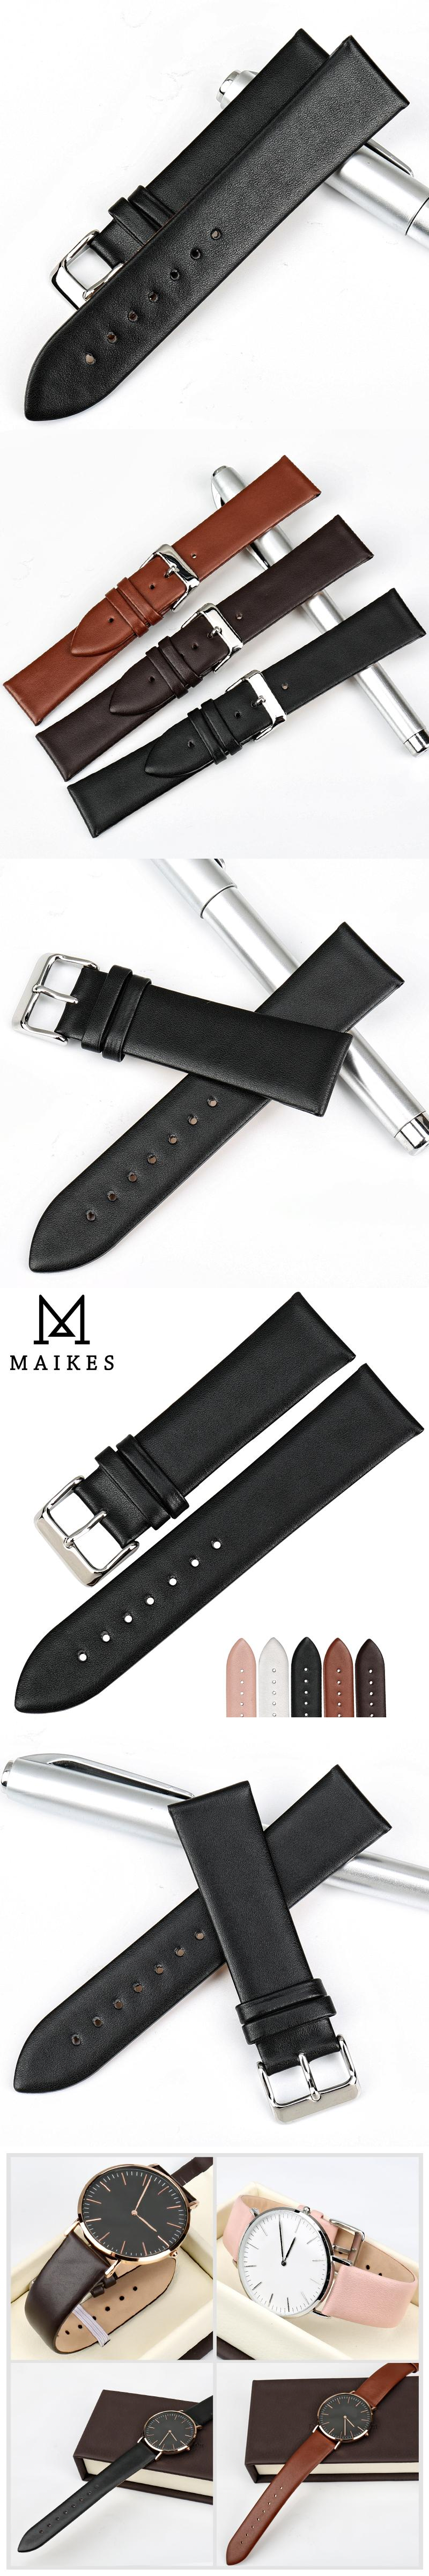 28b6f045507 MAIKES New Watch Accessories Thin Watchbands 16 18 19 20 22 mm Genuine  Leather Watch Strap